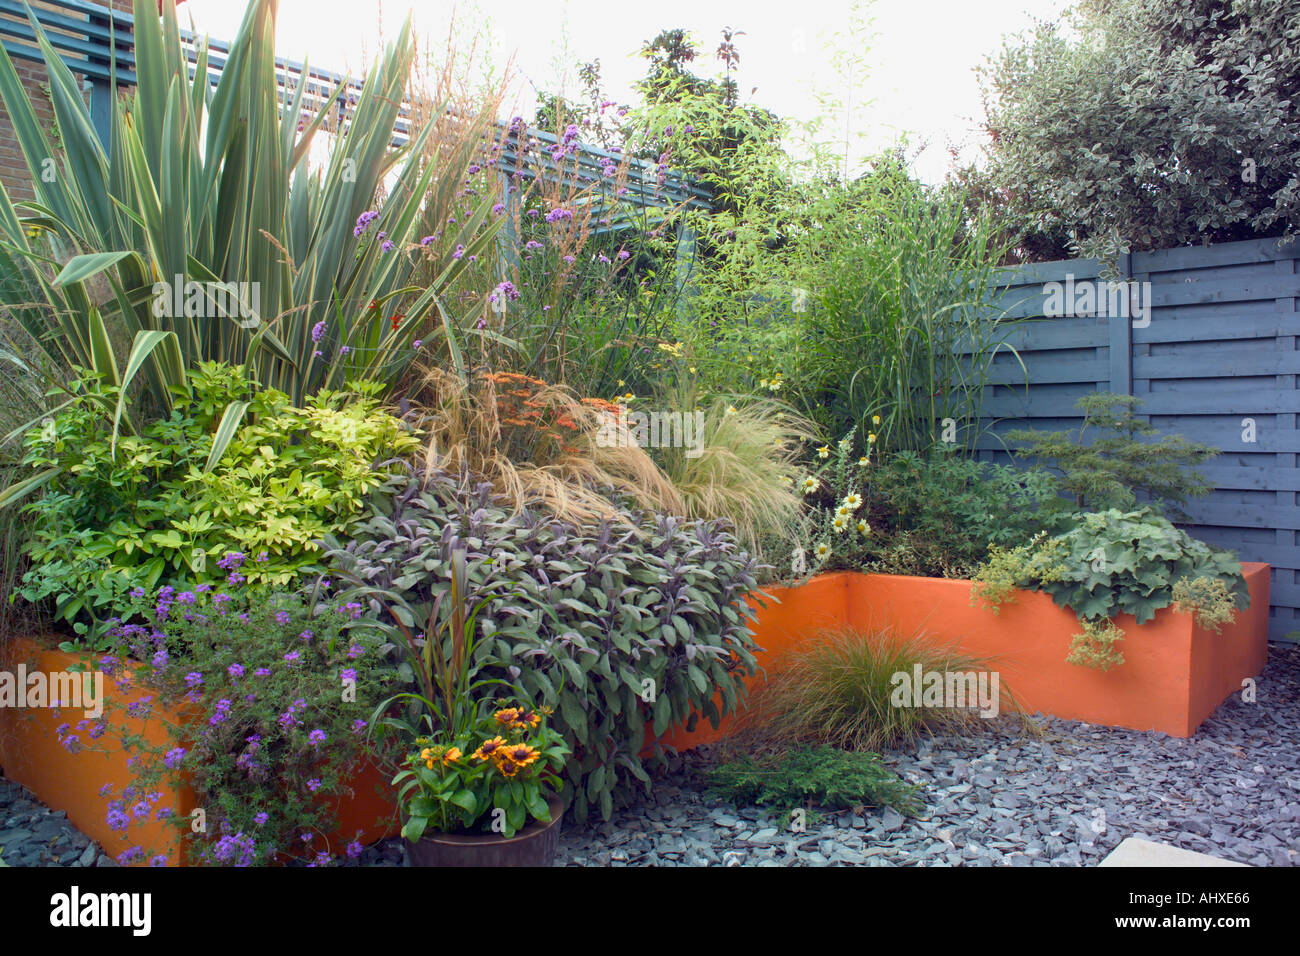 Small Town Garden With Good Structure Colour And Planting Raised